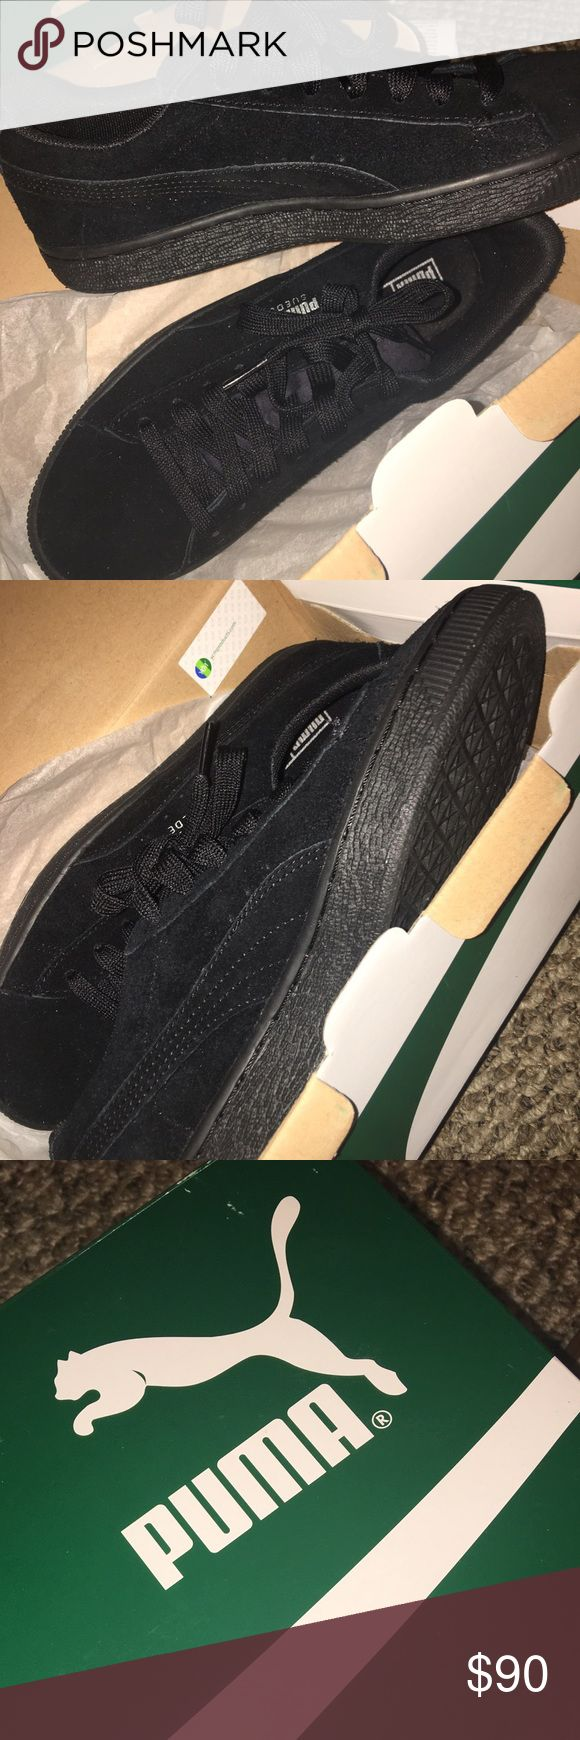 NEW PUMAS (BLACK) All black suede puma sneakers! black soles, deadstock ( never worn) Puma Shoes Sneakers